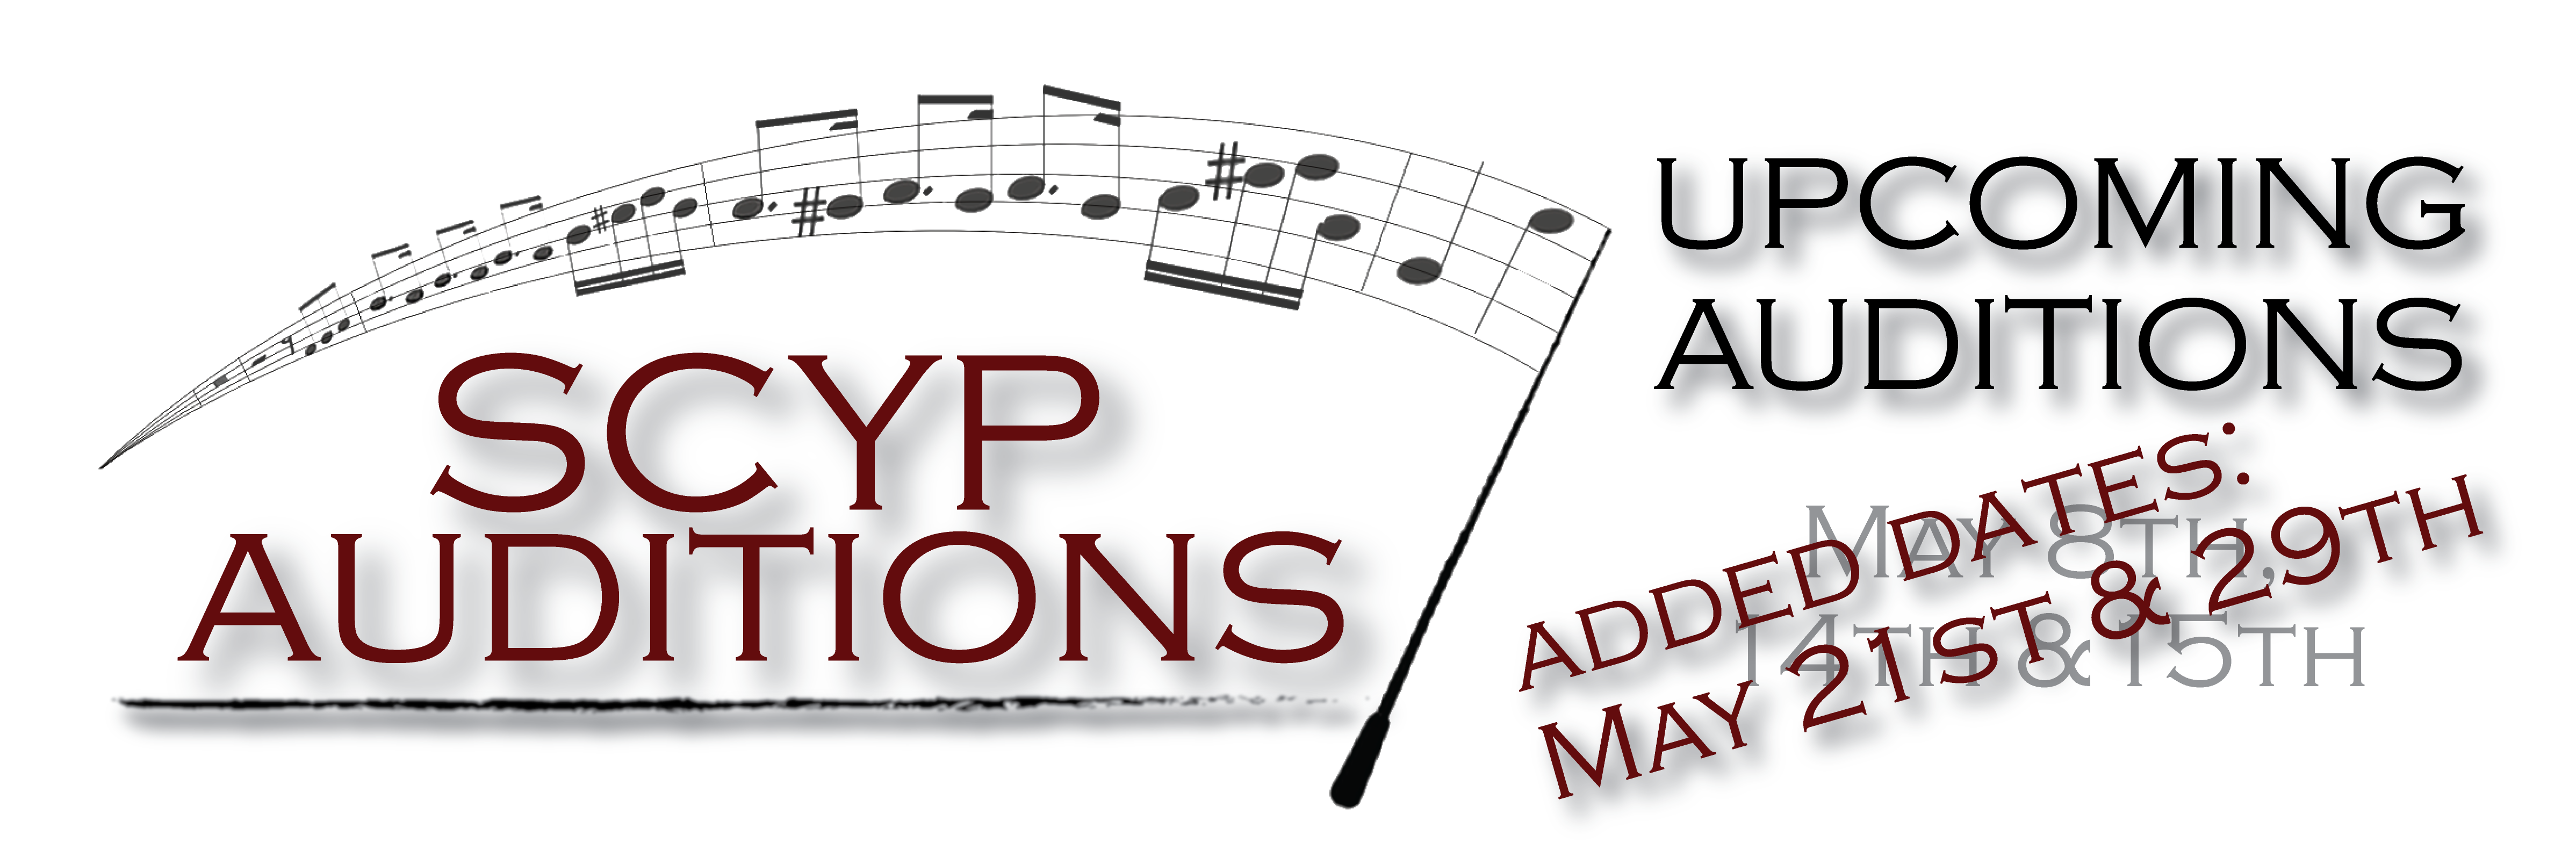 Summer Auditions 2016 added